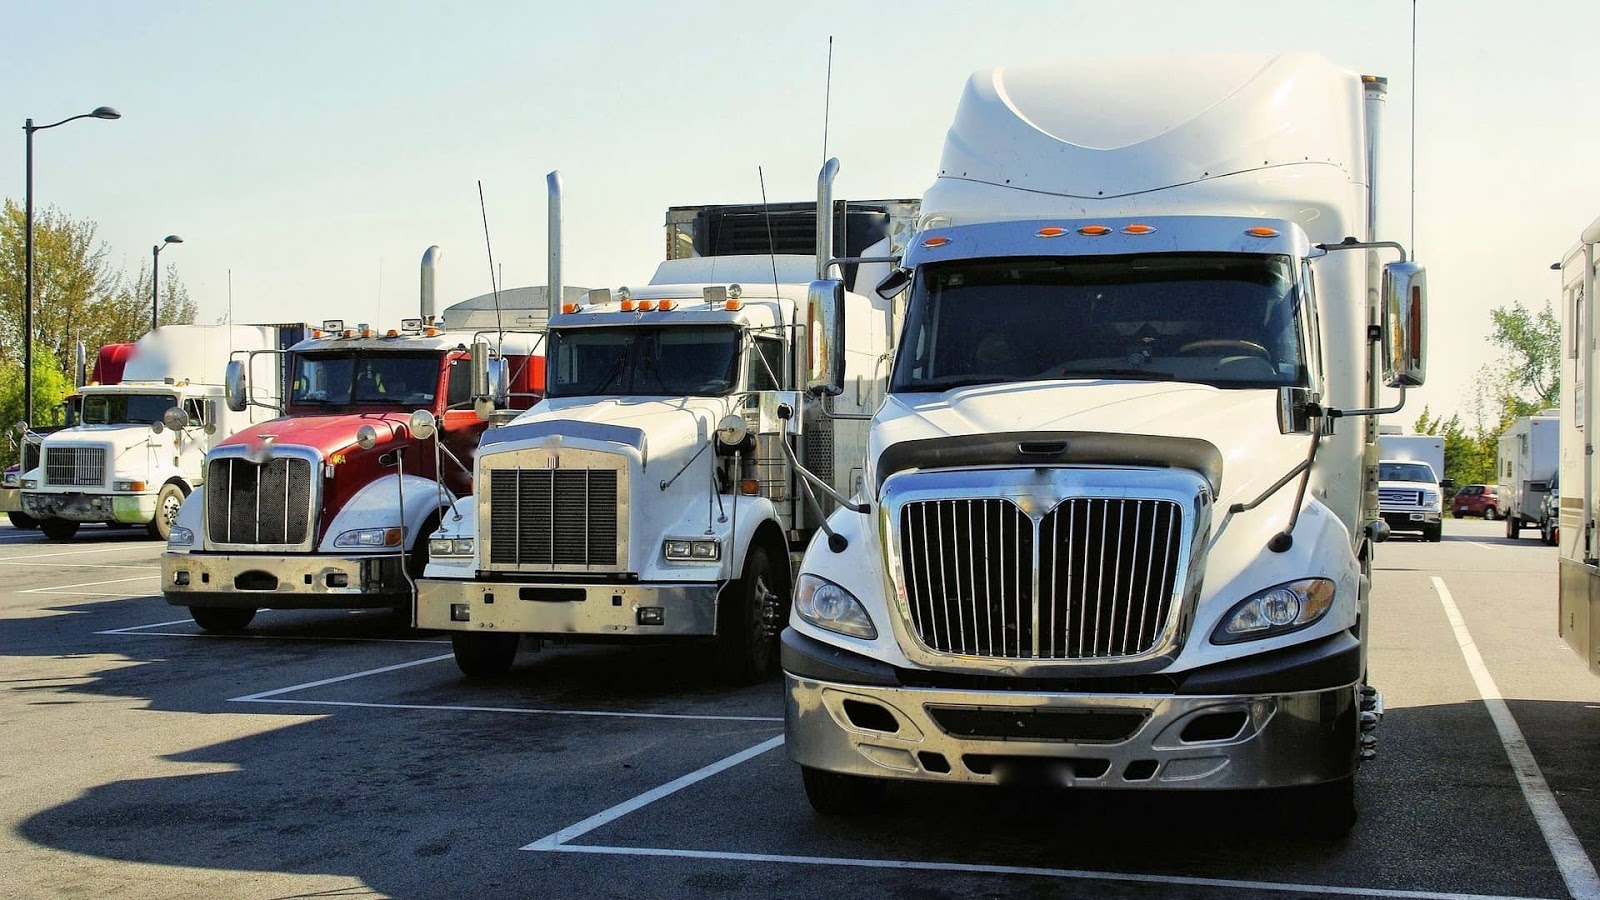 trucks lined up in parking lot